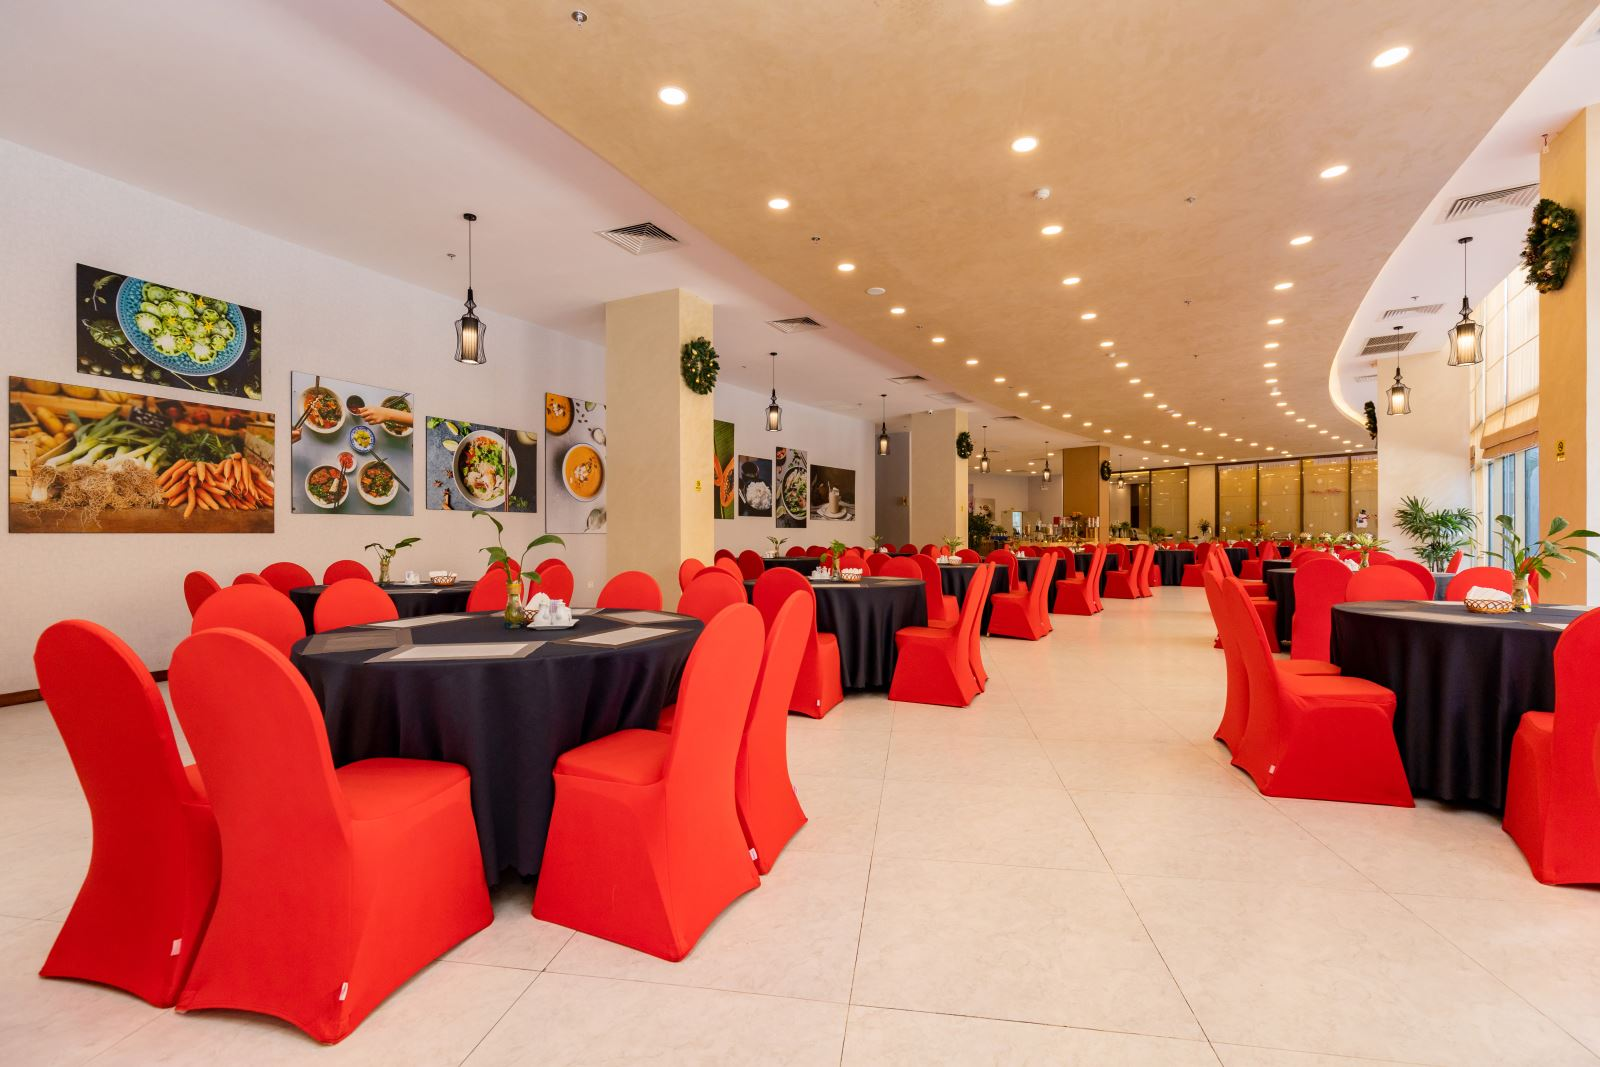 Restaurant - The best of Vietnamese and International cuisine